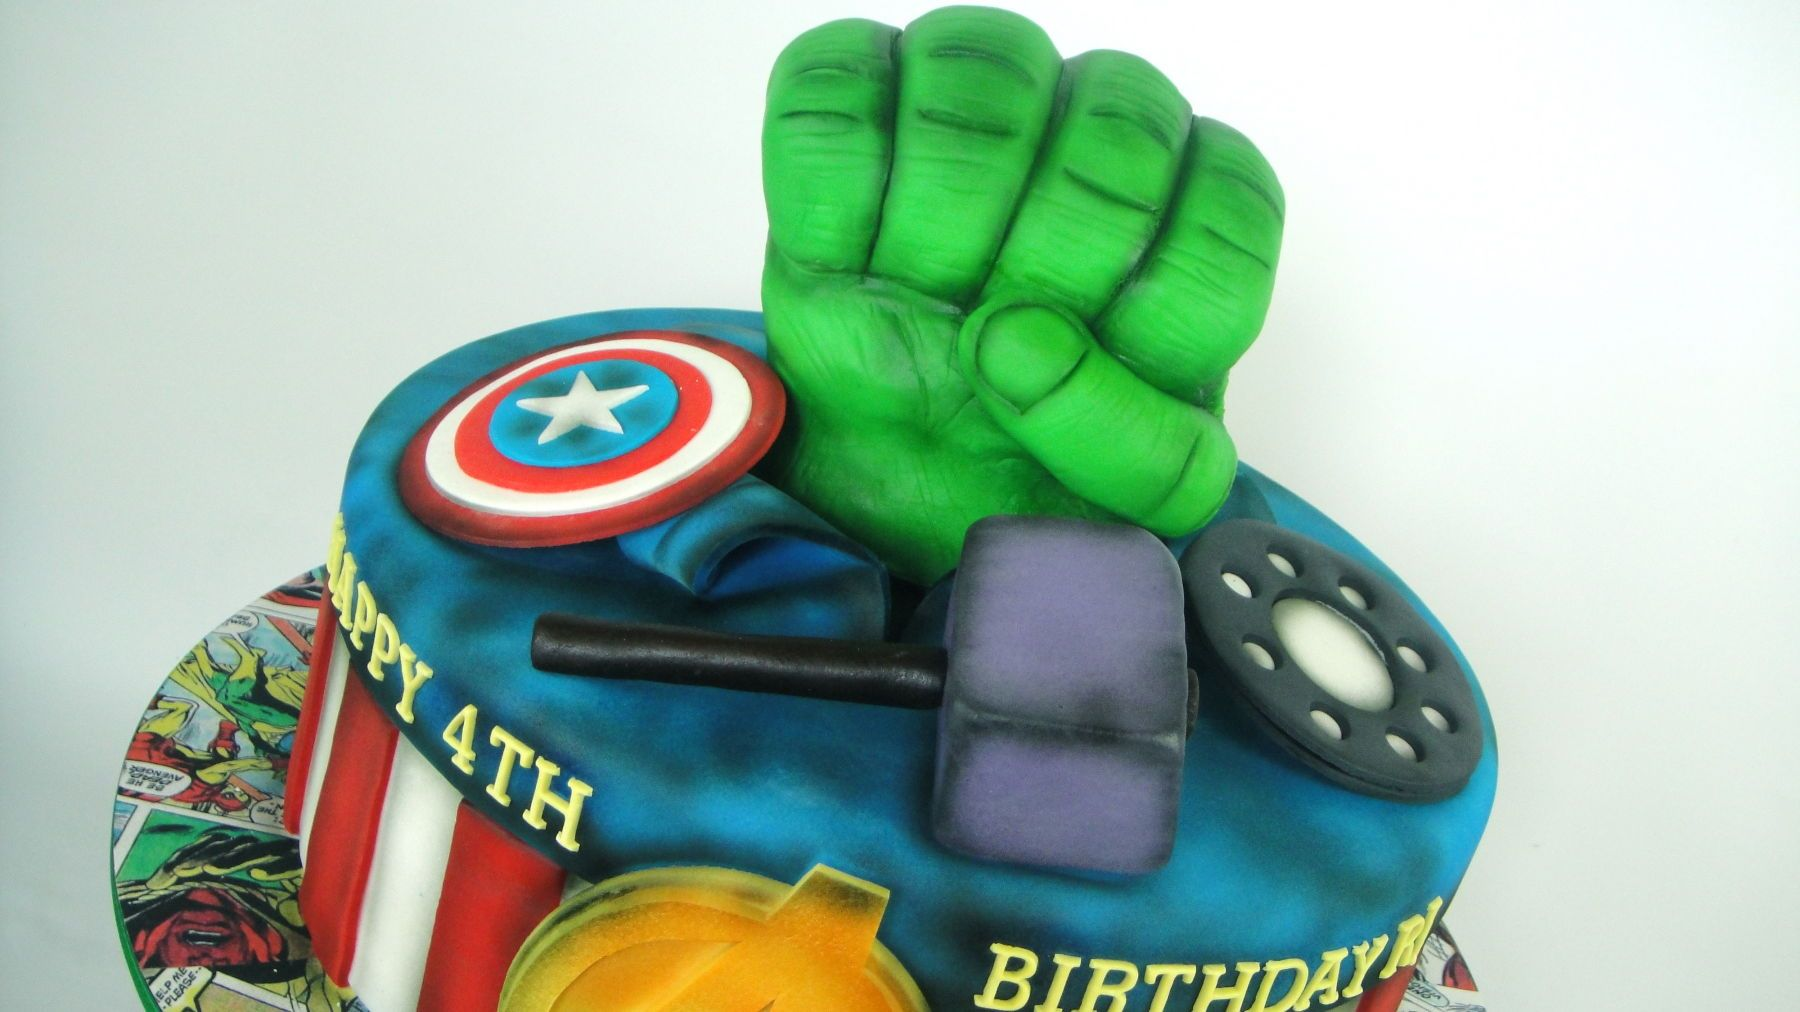 Avengers birthday cake toppers with modern concept and